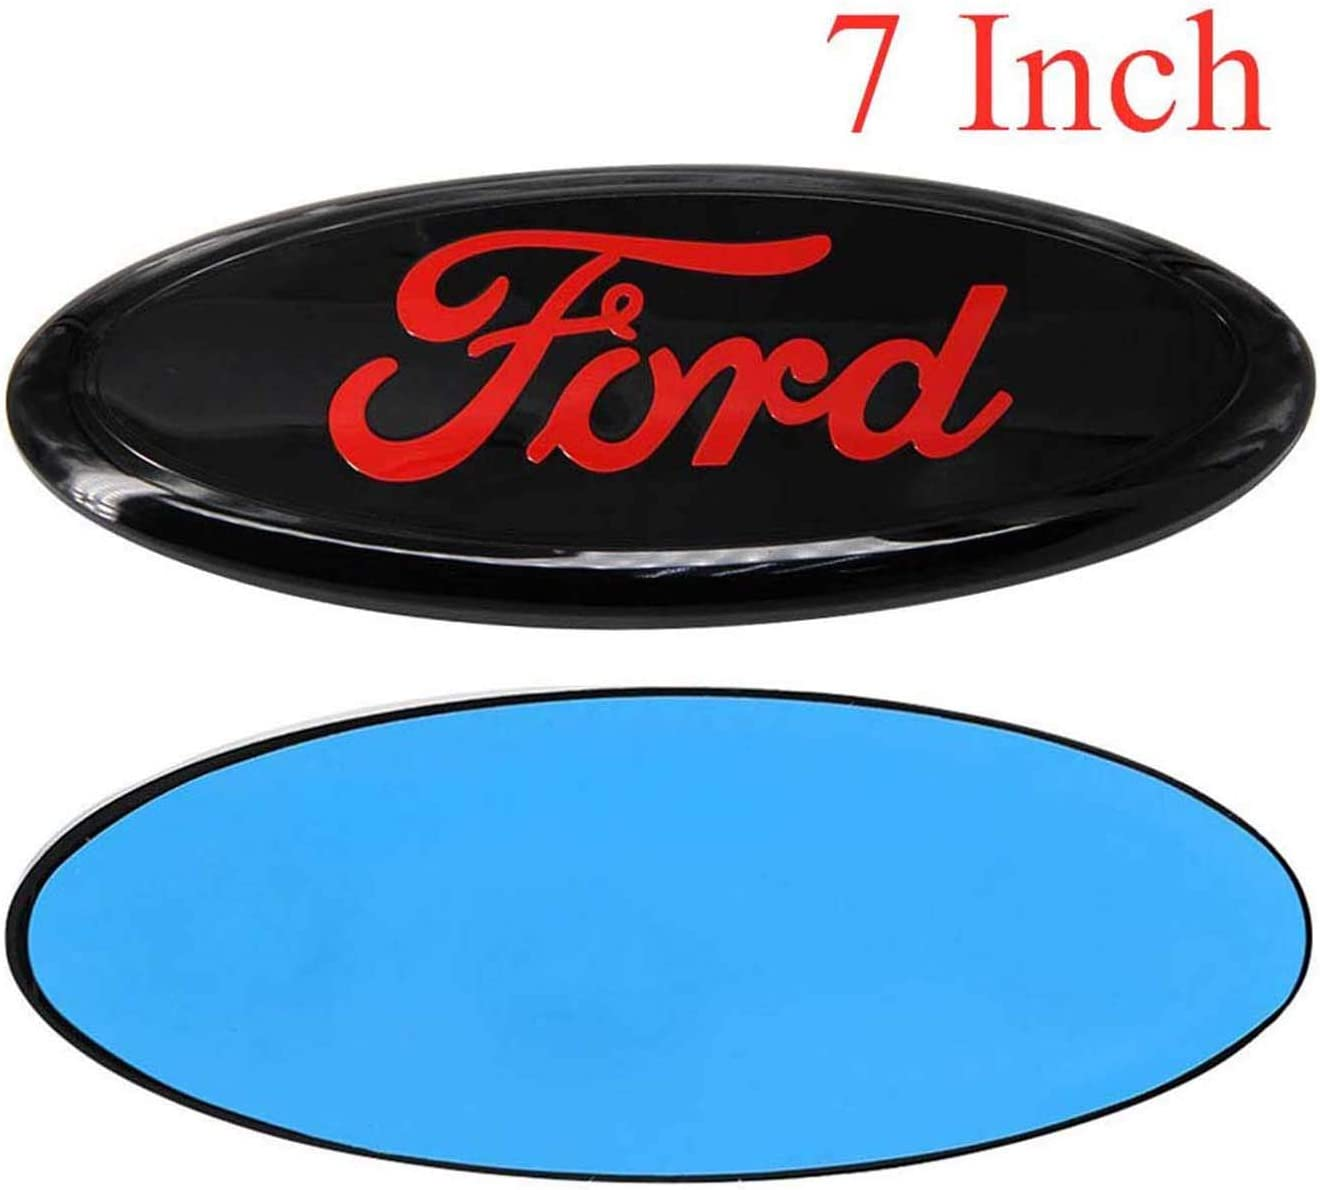 Shenwinfy 9 Inch Front Grille Rear Tailgate Emblem for 04-14 F150 11-14 Edge 11-16 Explorer 06-11 Ranger 07-14 Expedition Red Writing